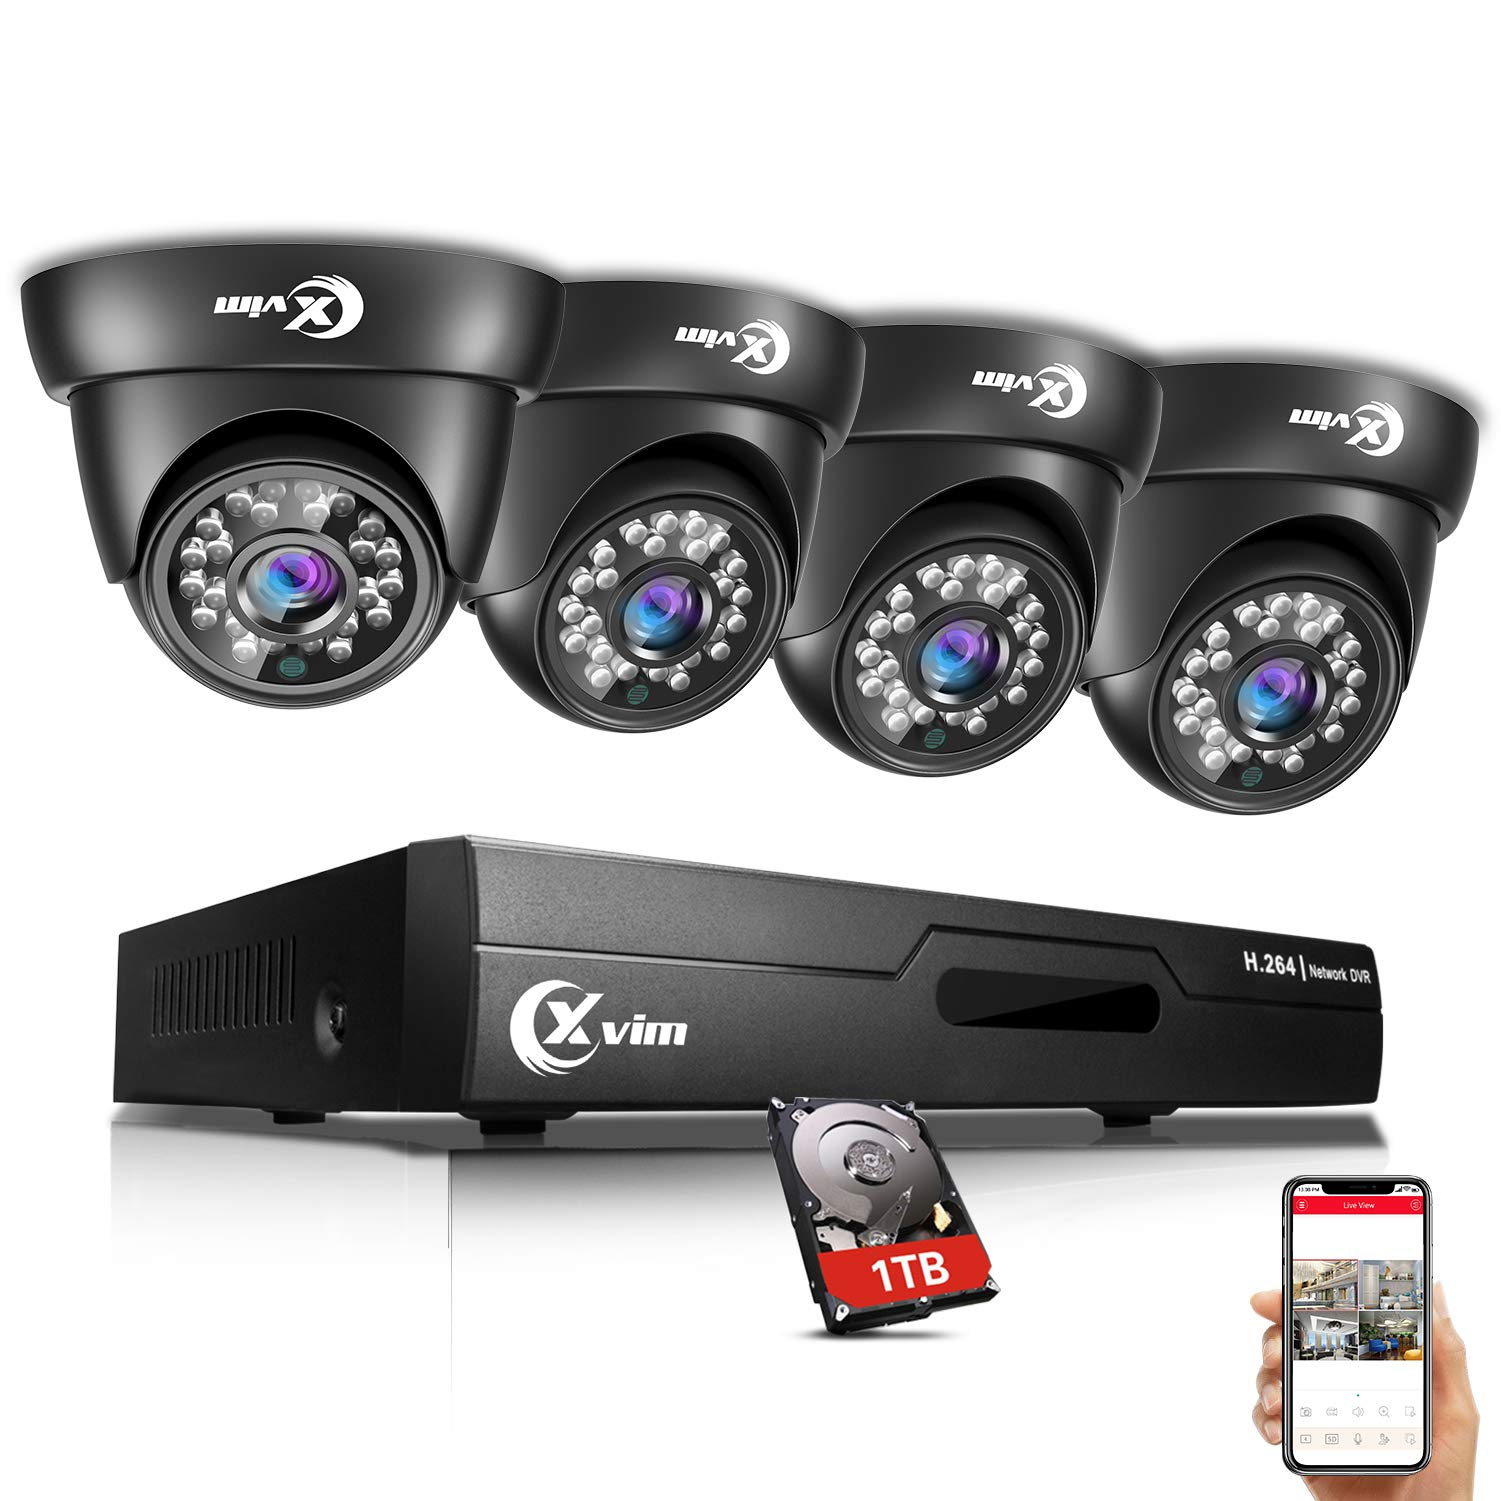 XVIM 8CH 720P Video Security Camera DVR System, 4 HD 1.0MP Indoor Outdoor Dome CCTV Surveillance Cameras with 85ft Night Vision, 1TB Hard Drive by X-VIM